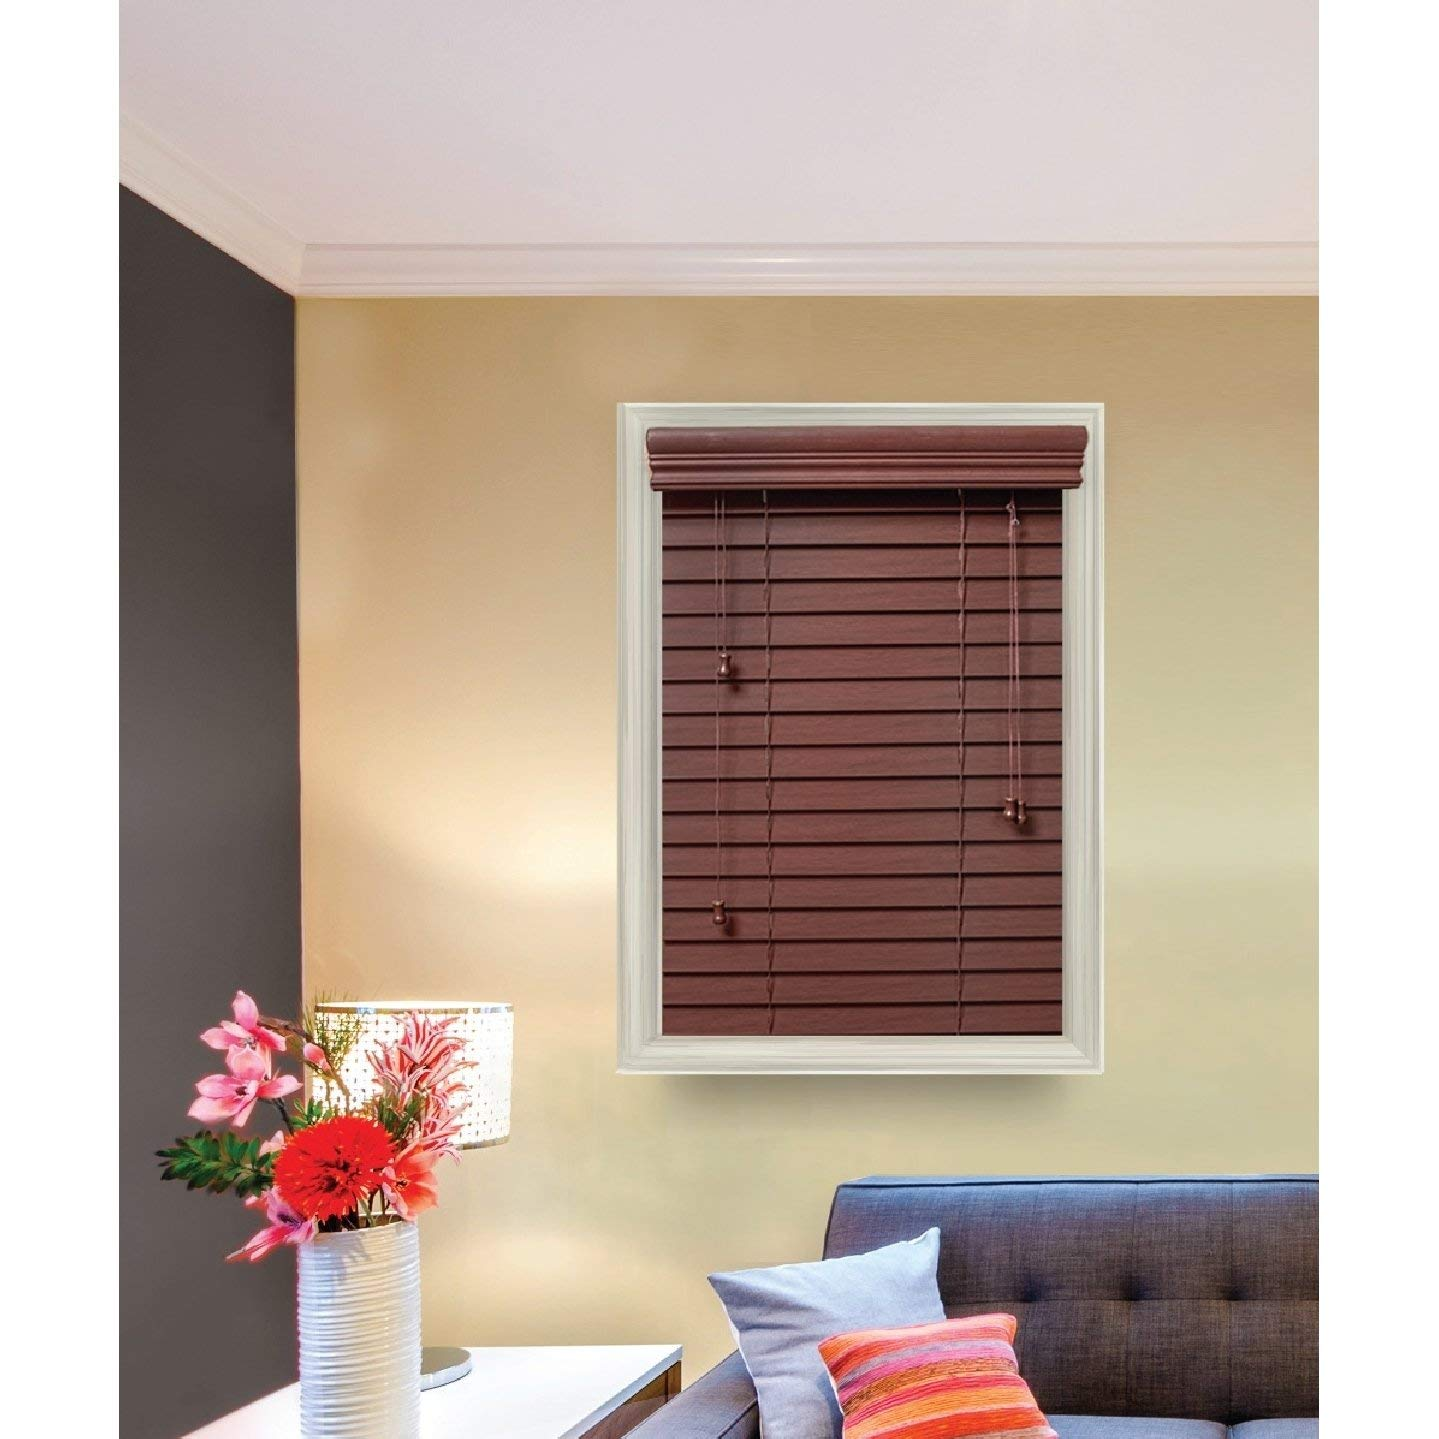 Treatments 34 1//2 x 60 Golden Oak SANFIT FP34560GO Lotus /& Windoware 106 Inch Faux Wood Blinds Window coverings